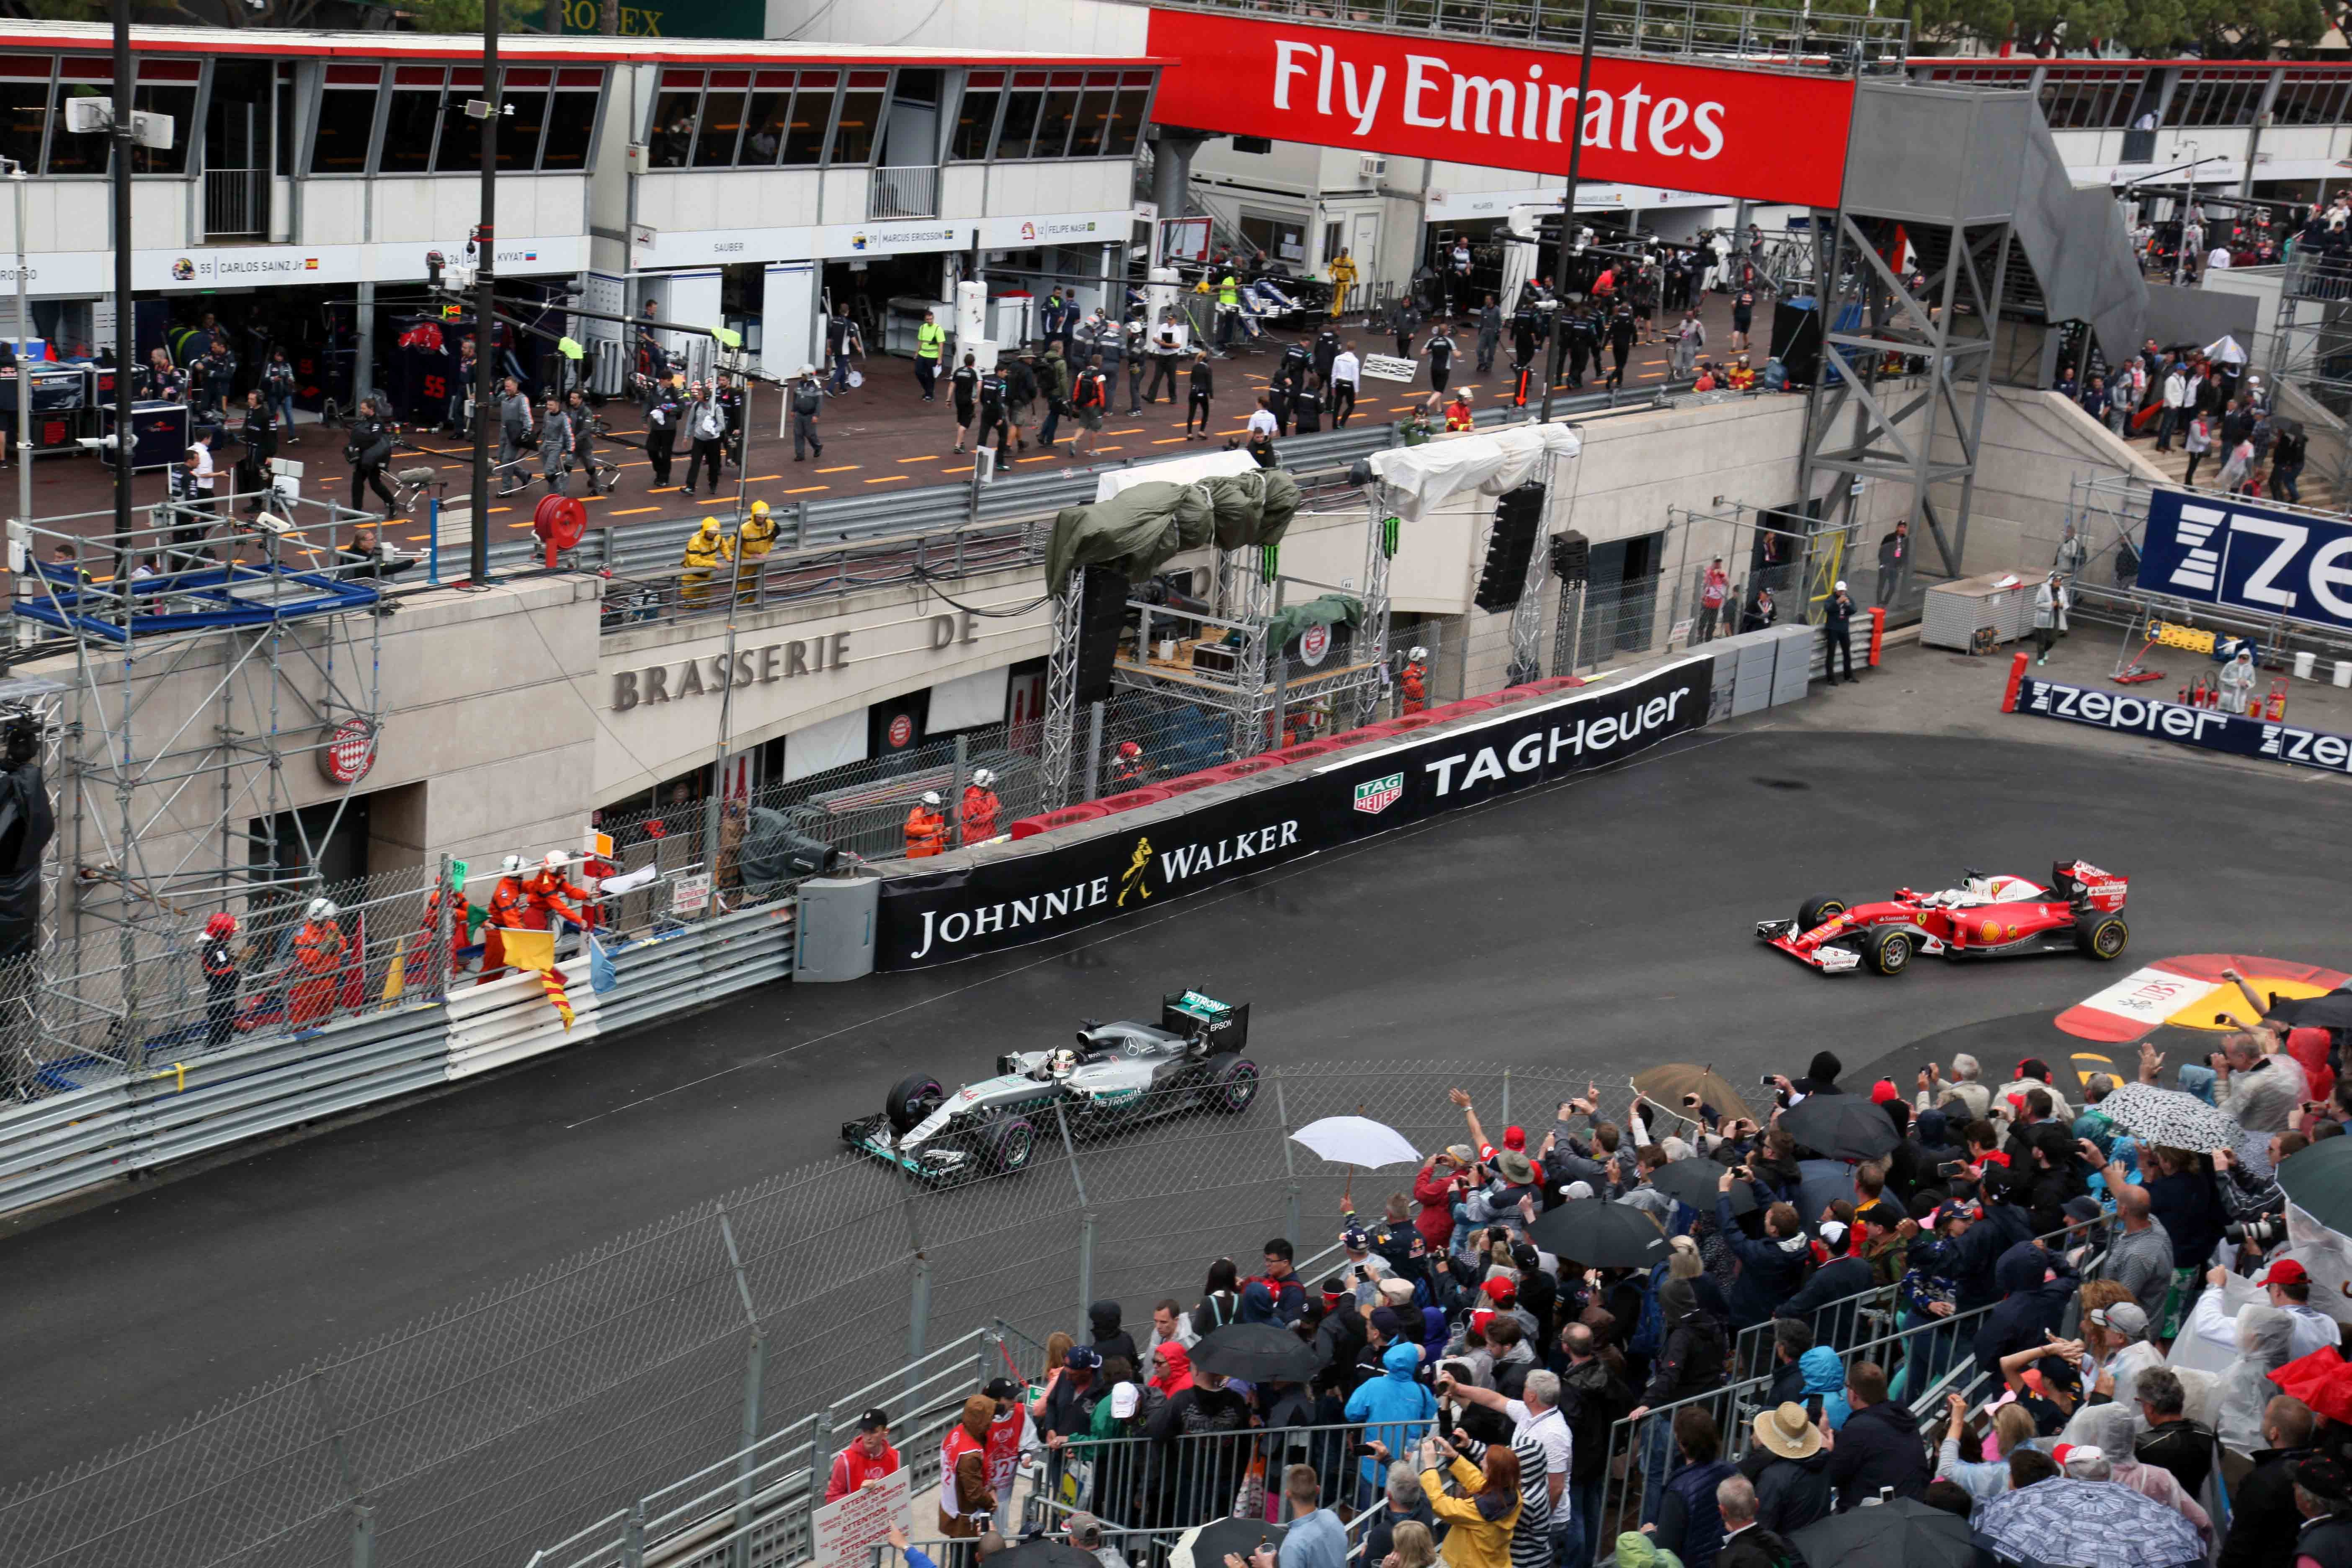 Lewis Hamilton, waving to the crowd during his celebration lap.  Photo Report: Behind The Scenes At The Monaco Grand Prix 2016 With TAG Heuer CEO Jean-Claude Biver Photo Report: Behind The Scenes At The Monaco Grand Prix 2016 With TAG Heuer CEO Jean-Claude Biver IMG 0960